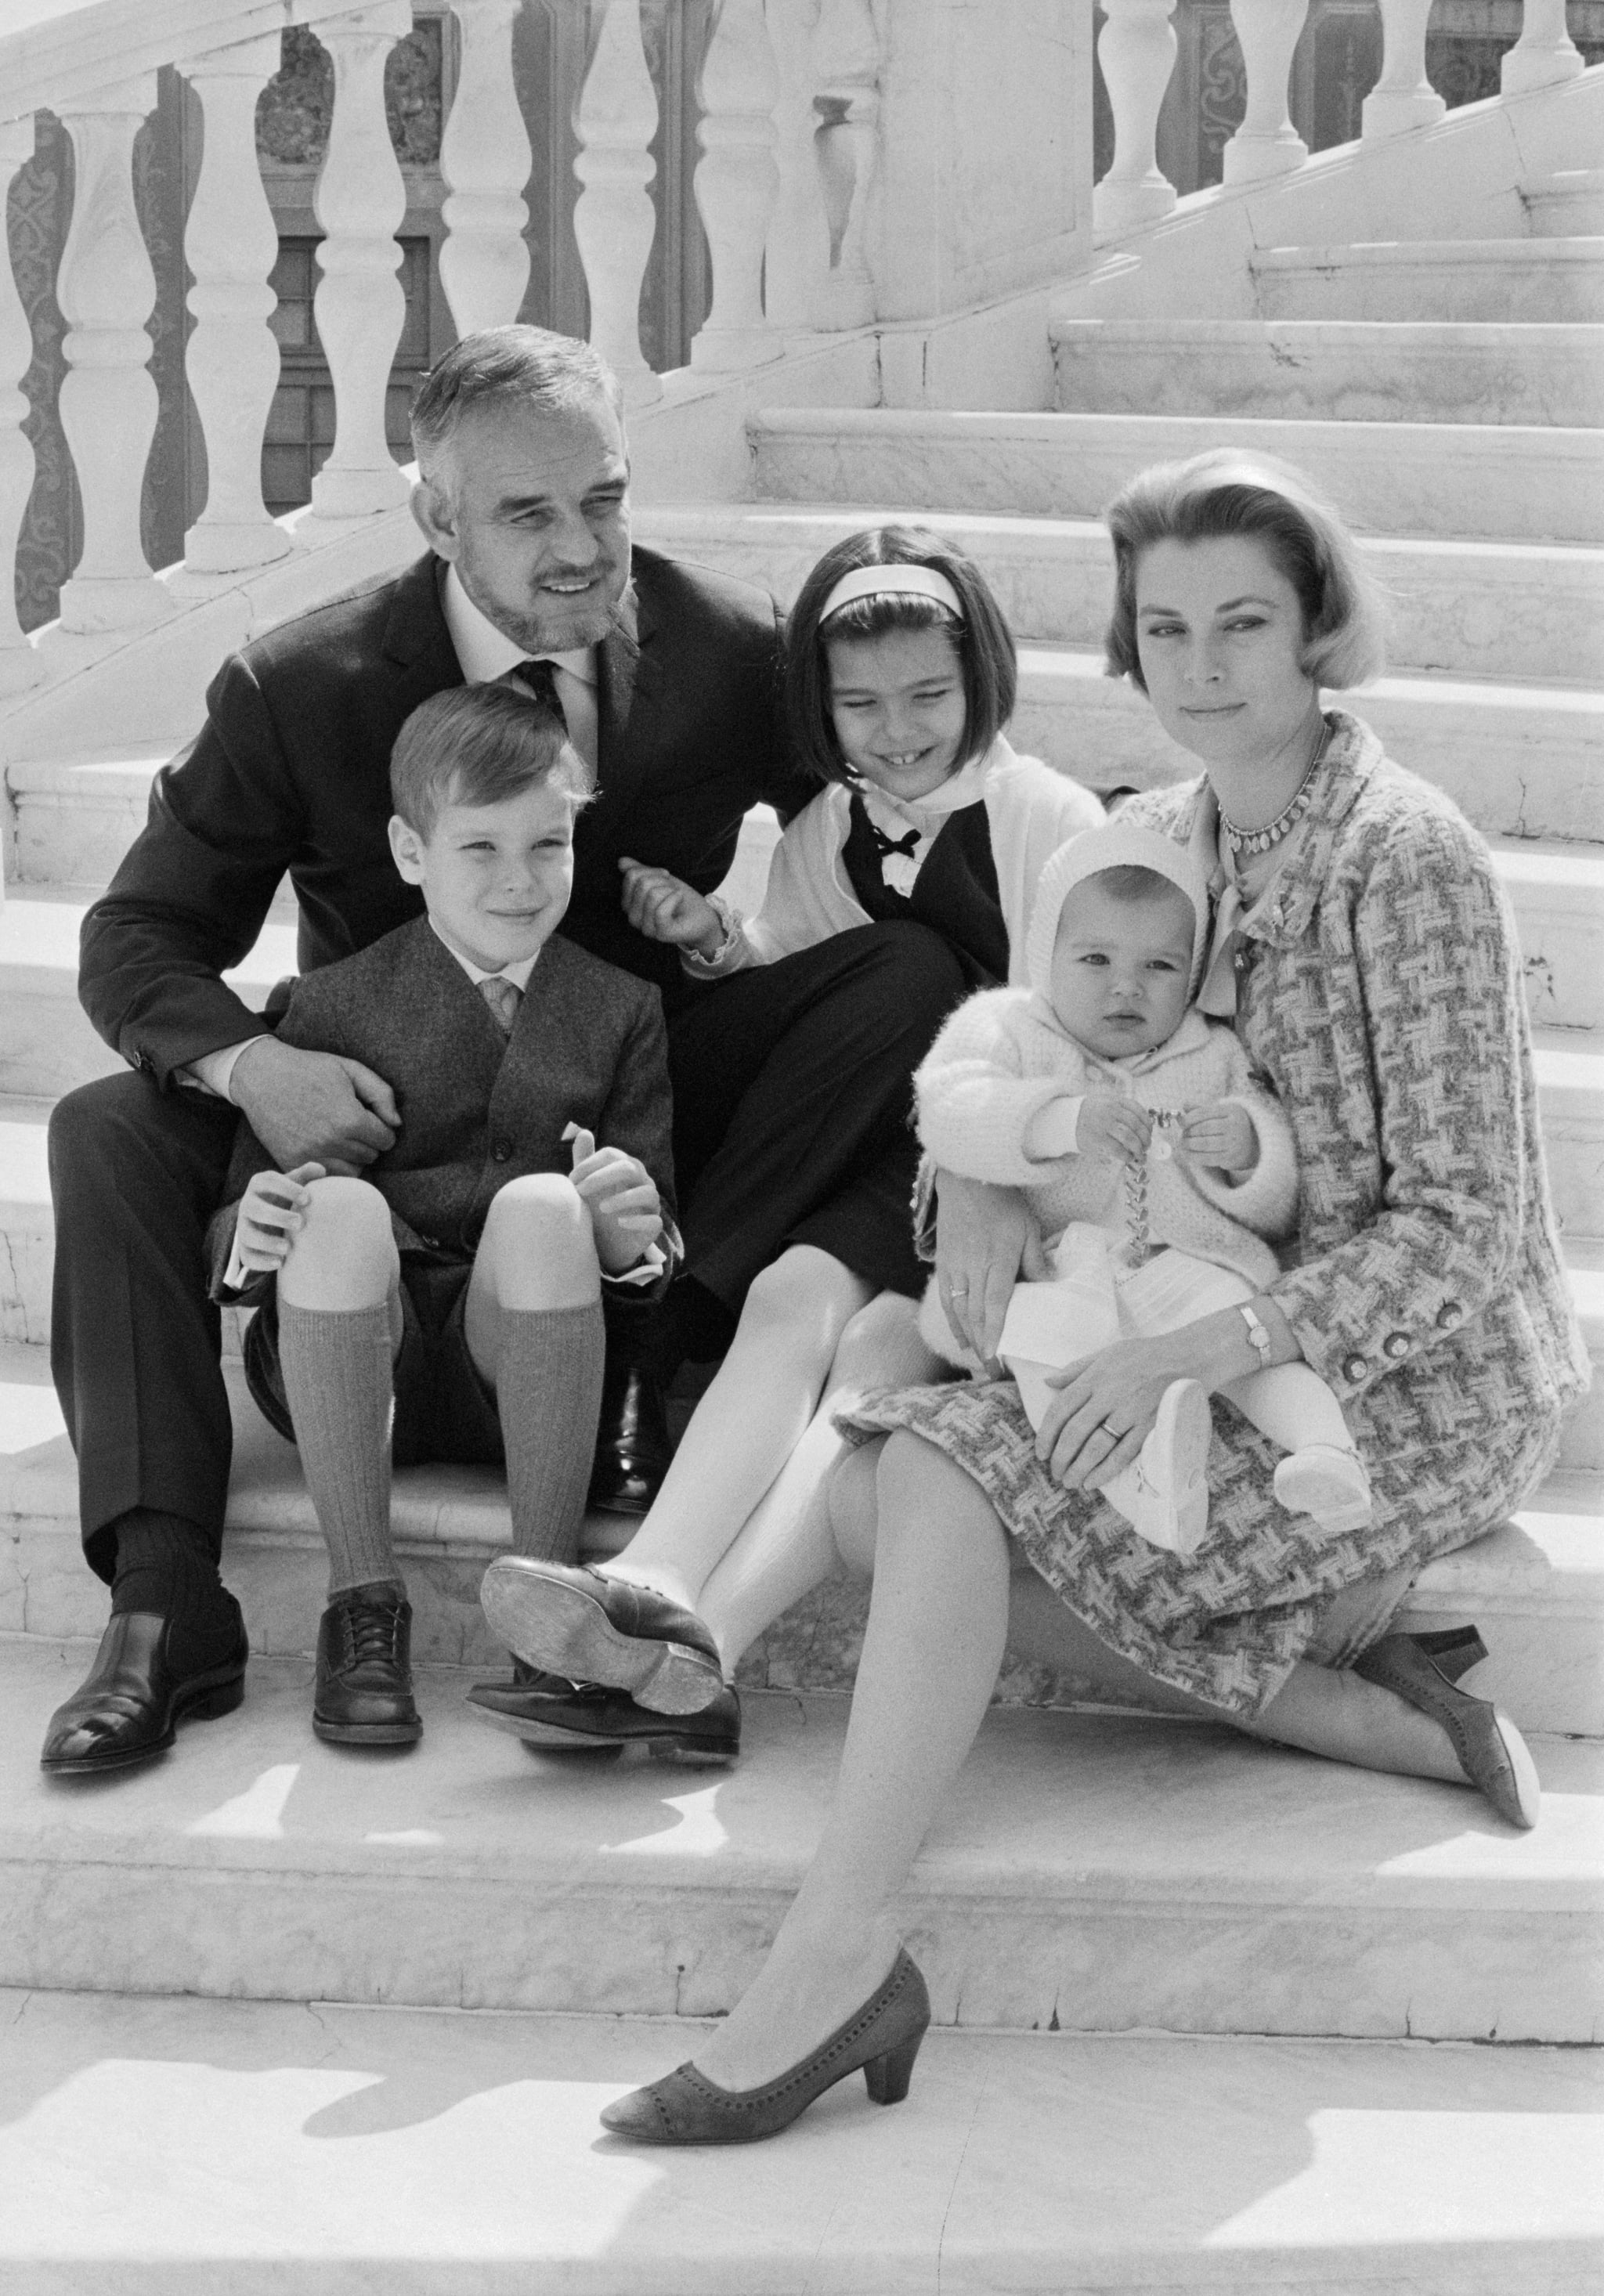 (Original Caption) Rainier and Grace Celebrate 10th Wedding Anniversary. Monte Carlo, Monaco: In connection with their tenth wedding anniversary celebration Prince Rainier and Princess of Monaco pose on the steps of the palace with their children: Princess Stephanie , 14 months; Princess Caroline, 9; and Prince Albert, 8. Asked to comment on 10 years of marriage, Princess Grace said: